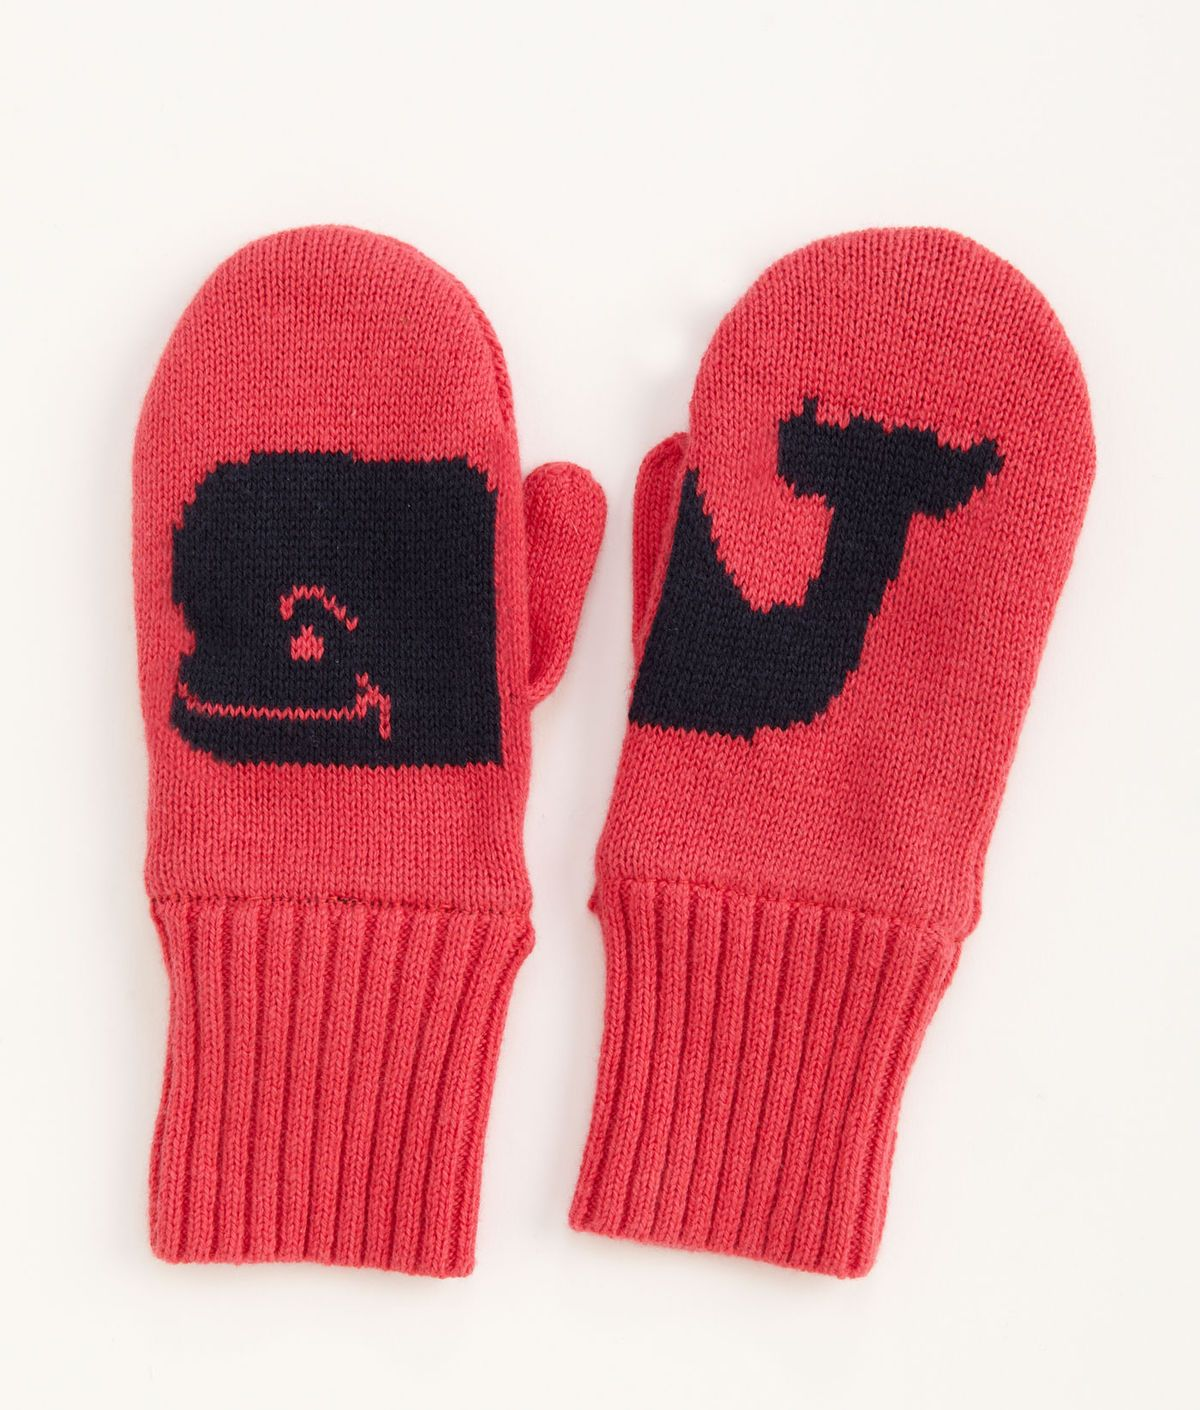 Girls  Accessories  Whale-N-Tail Mittens for Girls  - Vineyard Vines ... bdc49d44aa7c